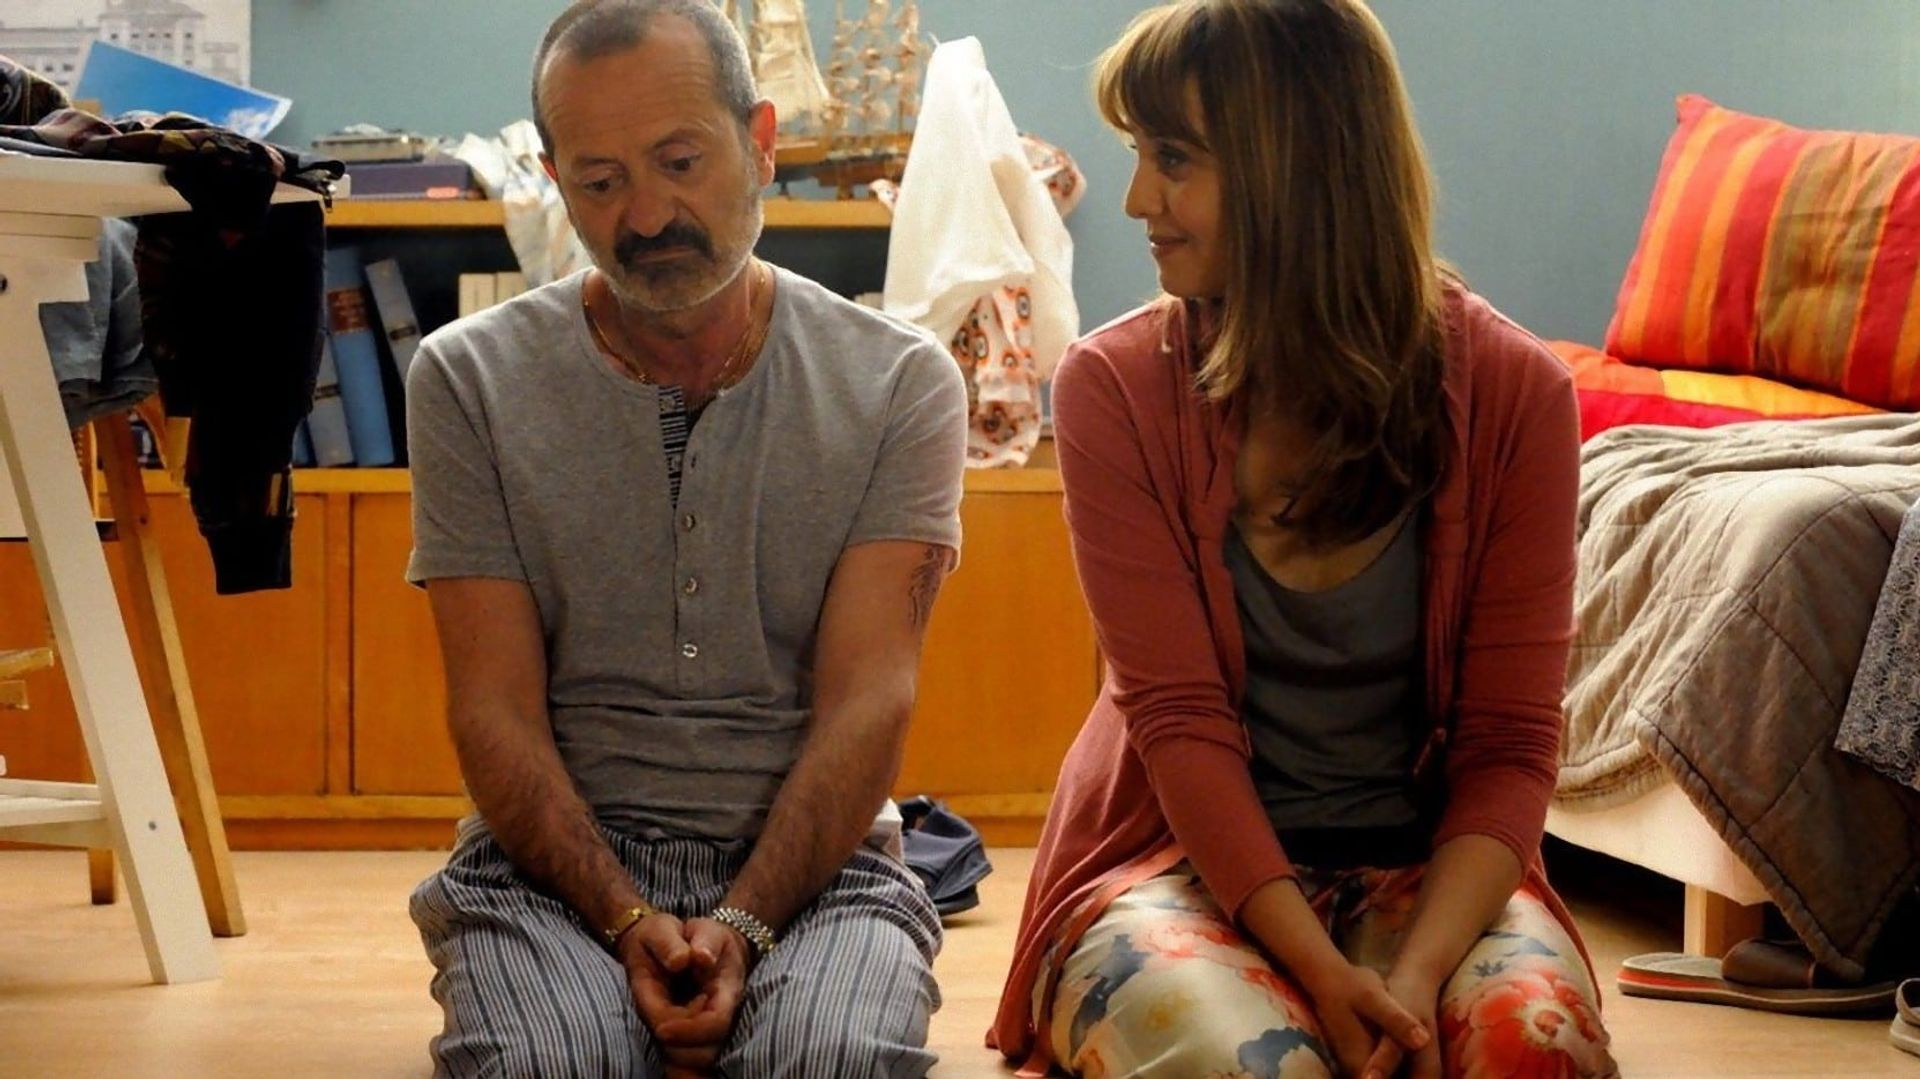 Un Boss In Salotto 2014 Where To Watch It Streaming Online Reelgood